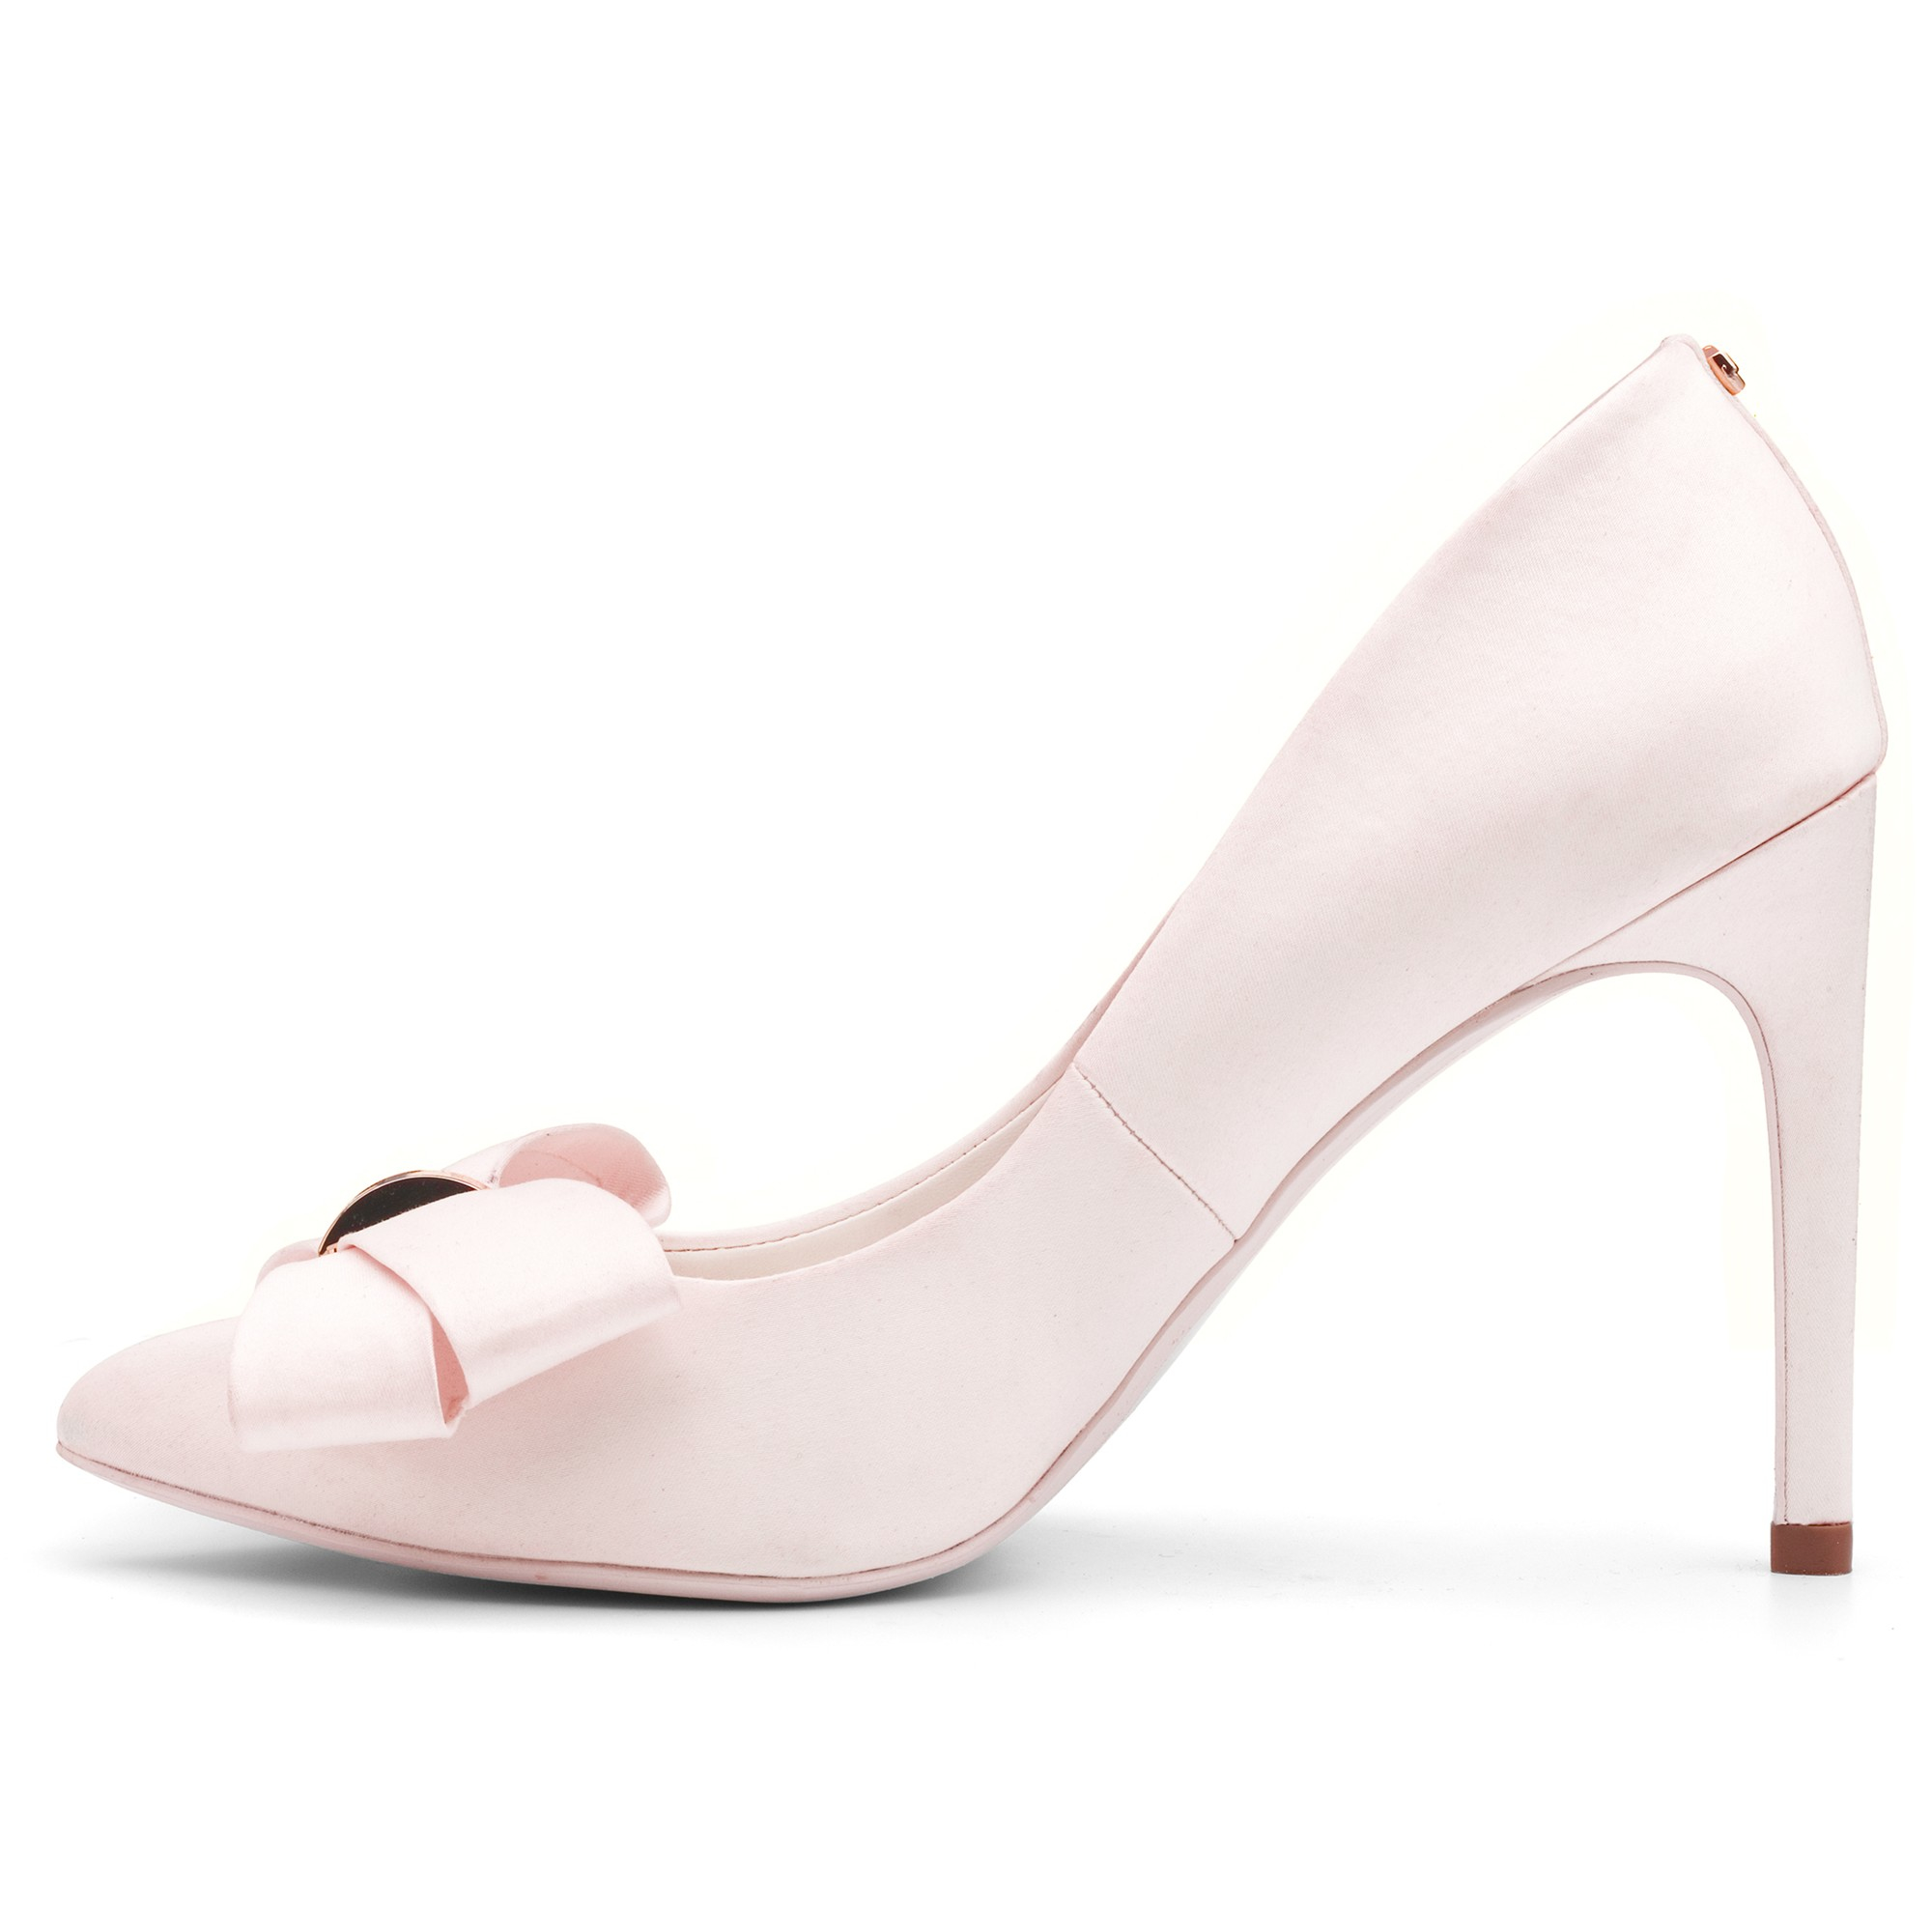 9314cb580b0 Ted Baker Pink Ichlibi Pointed Toe Stiletto Court Shoes